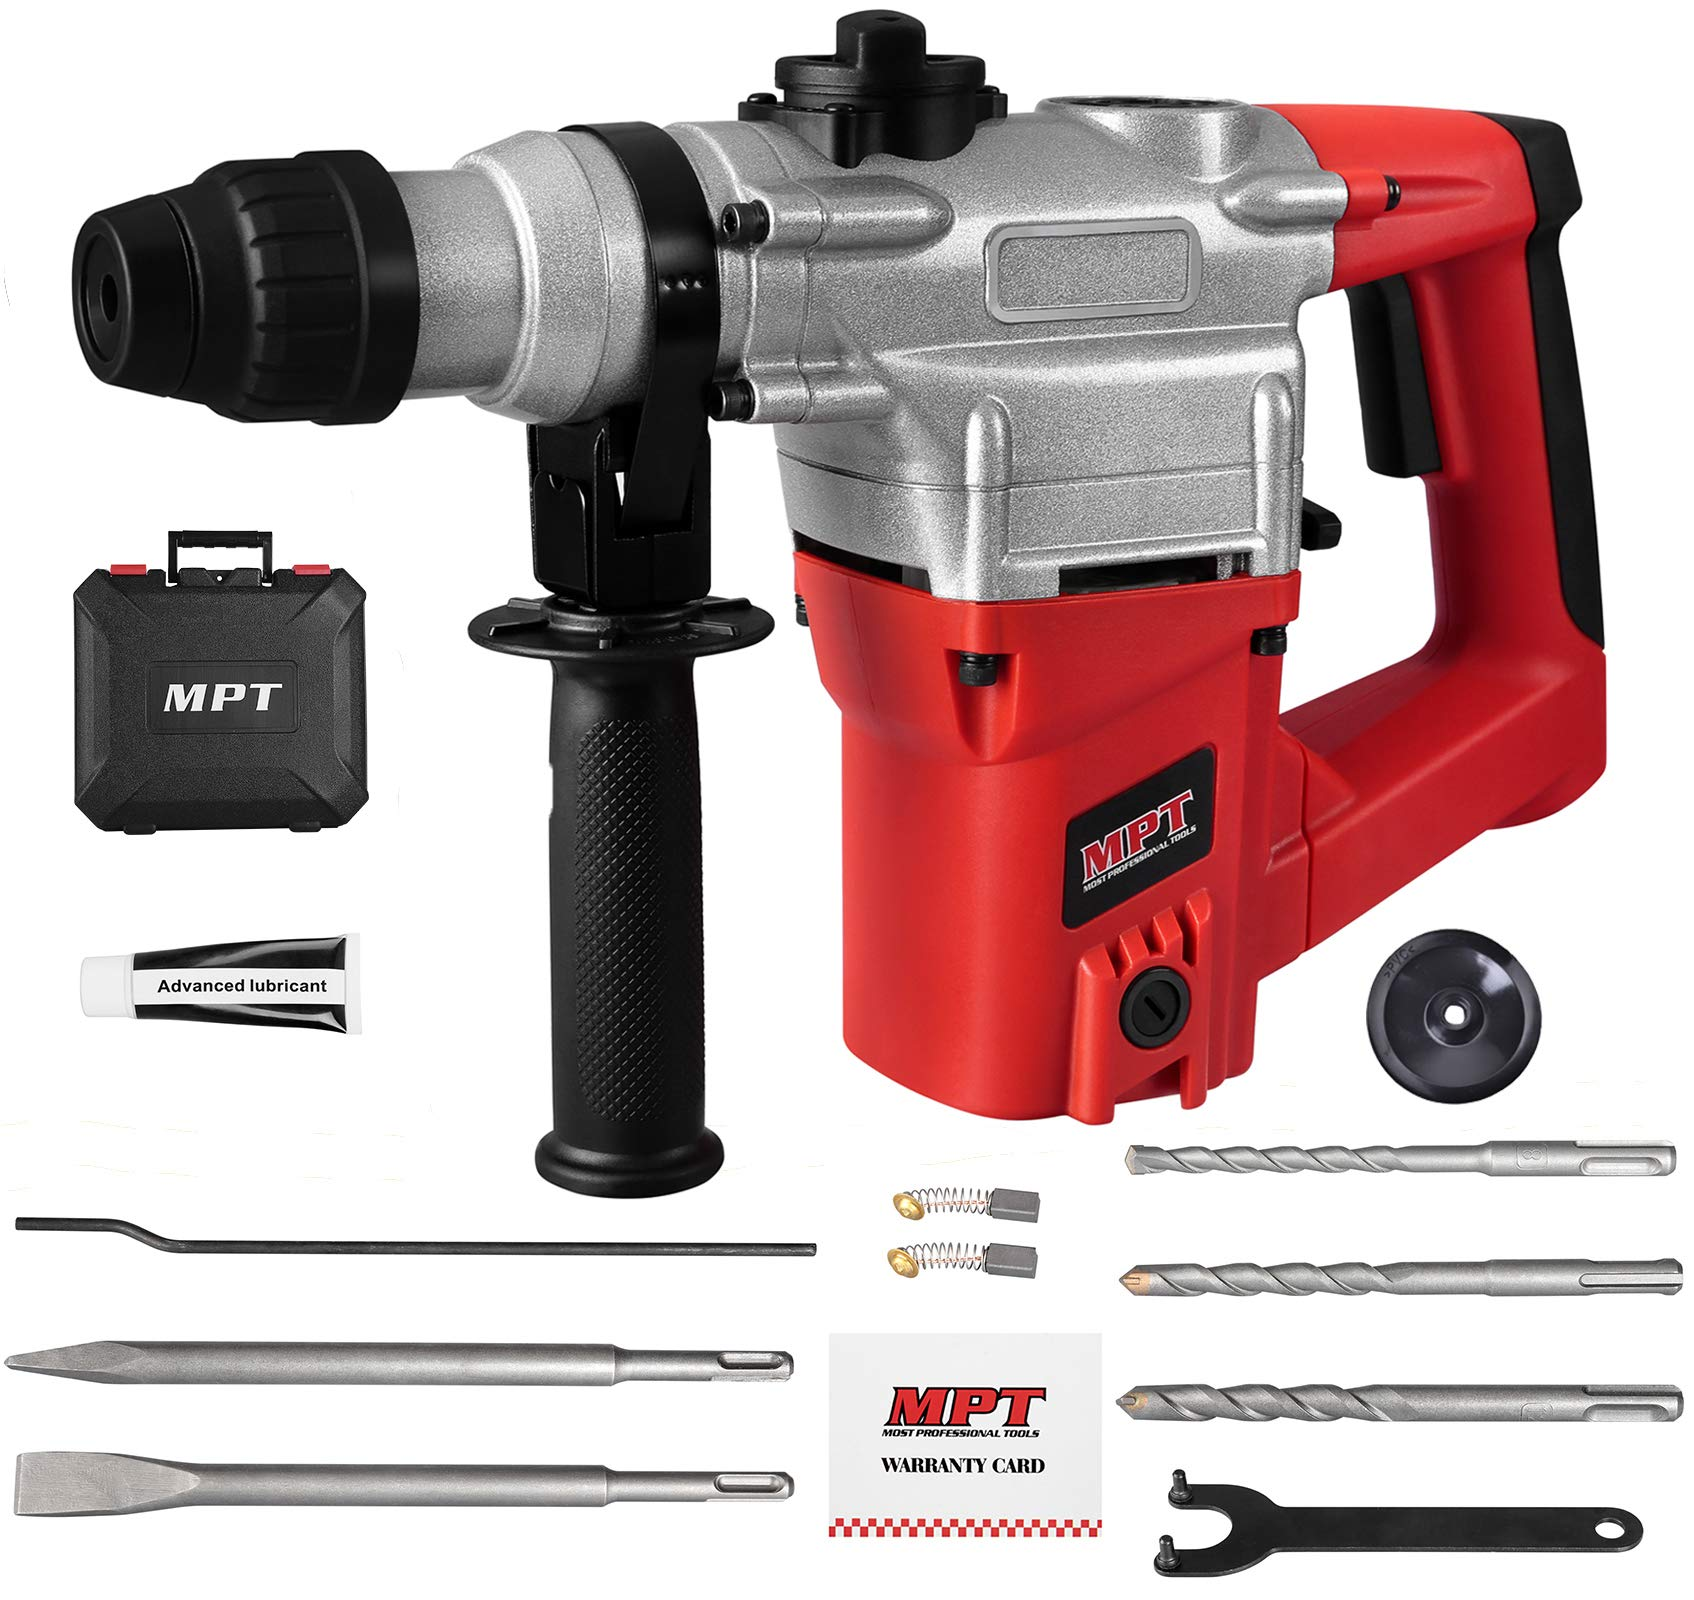 MPT 1 Inch SDS-plus 8.5 Amp Heavy Duty Rotary Hammer Drill,3 Function and Adjustabl Soft Grip Handle,Include 3 Drill Bits,Point and Flat Chisel with Case by MPT